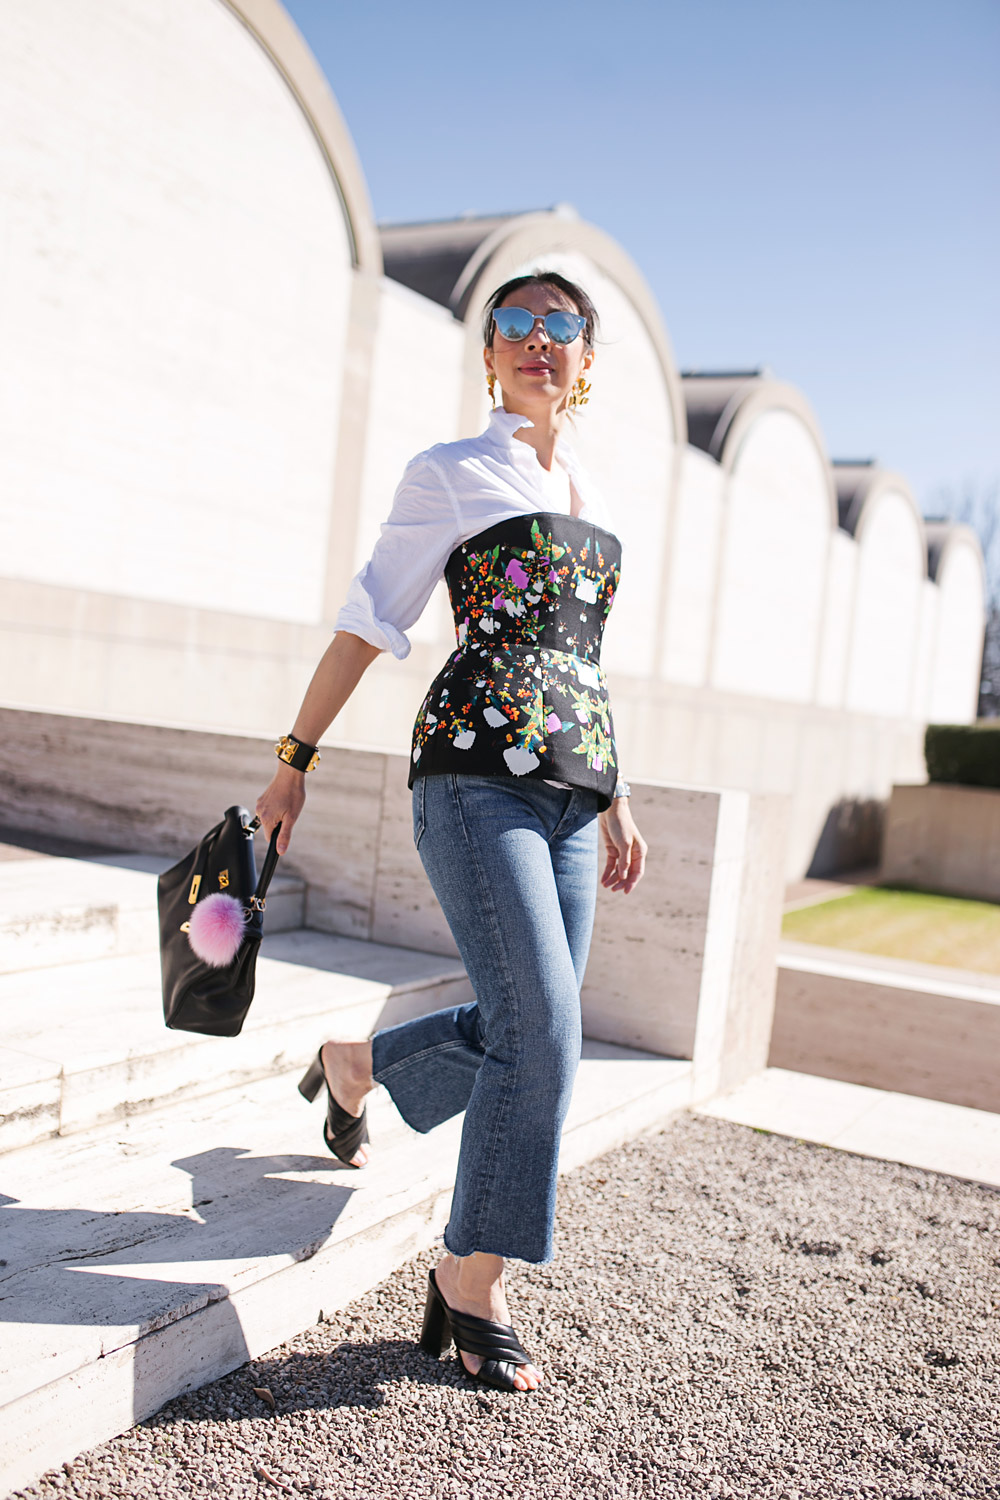 Fashion style How to corset wear over shirt for lady